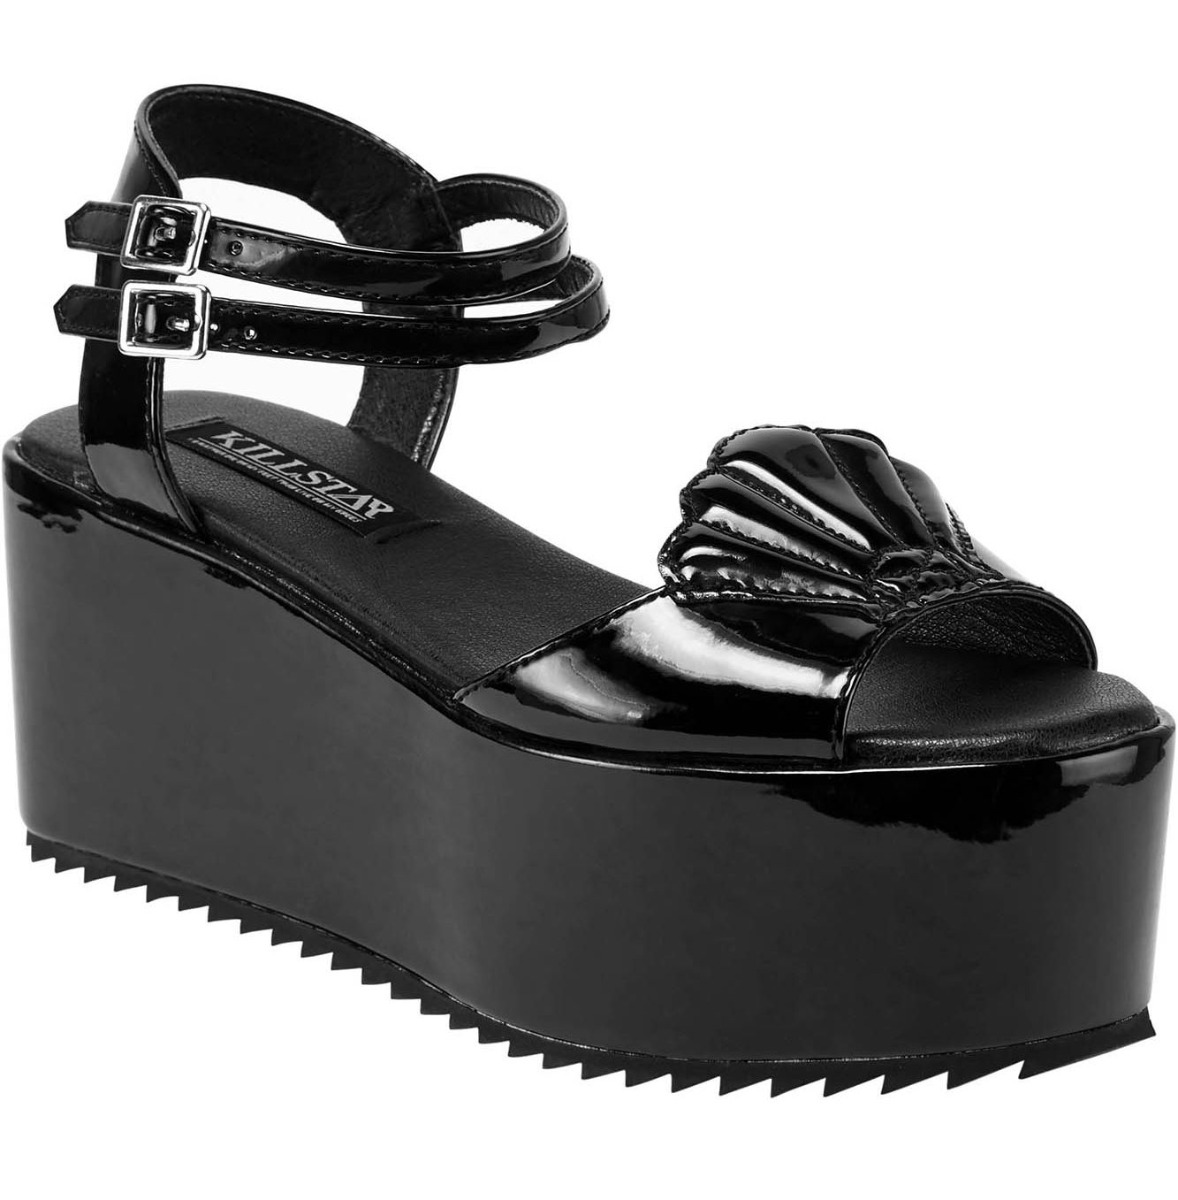 ks0015_nu-pieds-plateforme-gothique-glam-rock-sole-of-the-sirens